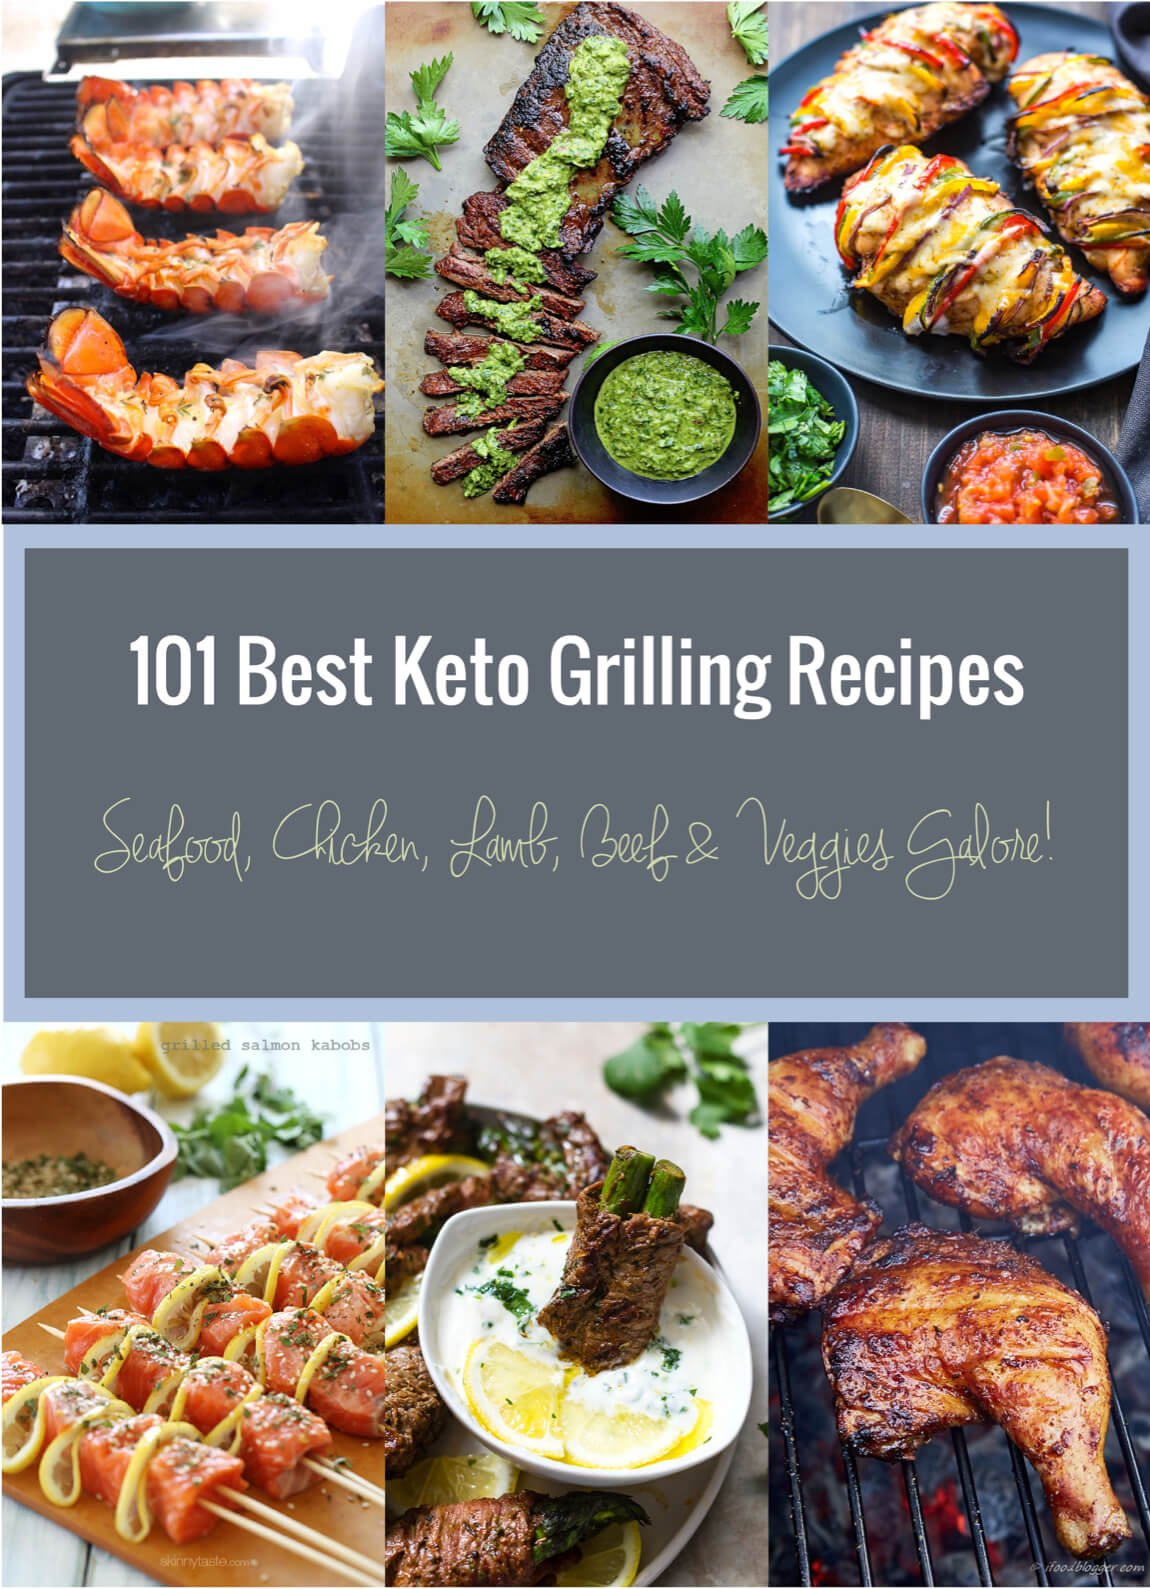 101 Best Images About Arthur Edward Waite: 101 Best Keto Grilling Recipes - Low Carb